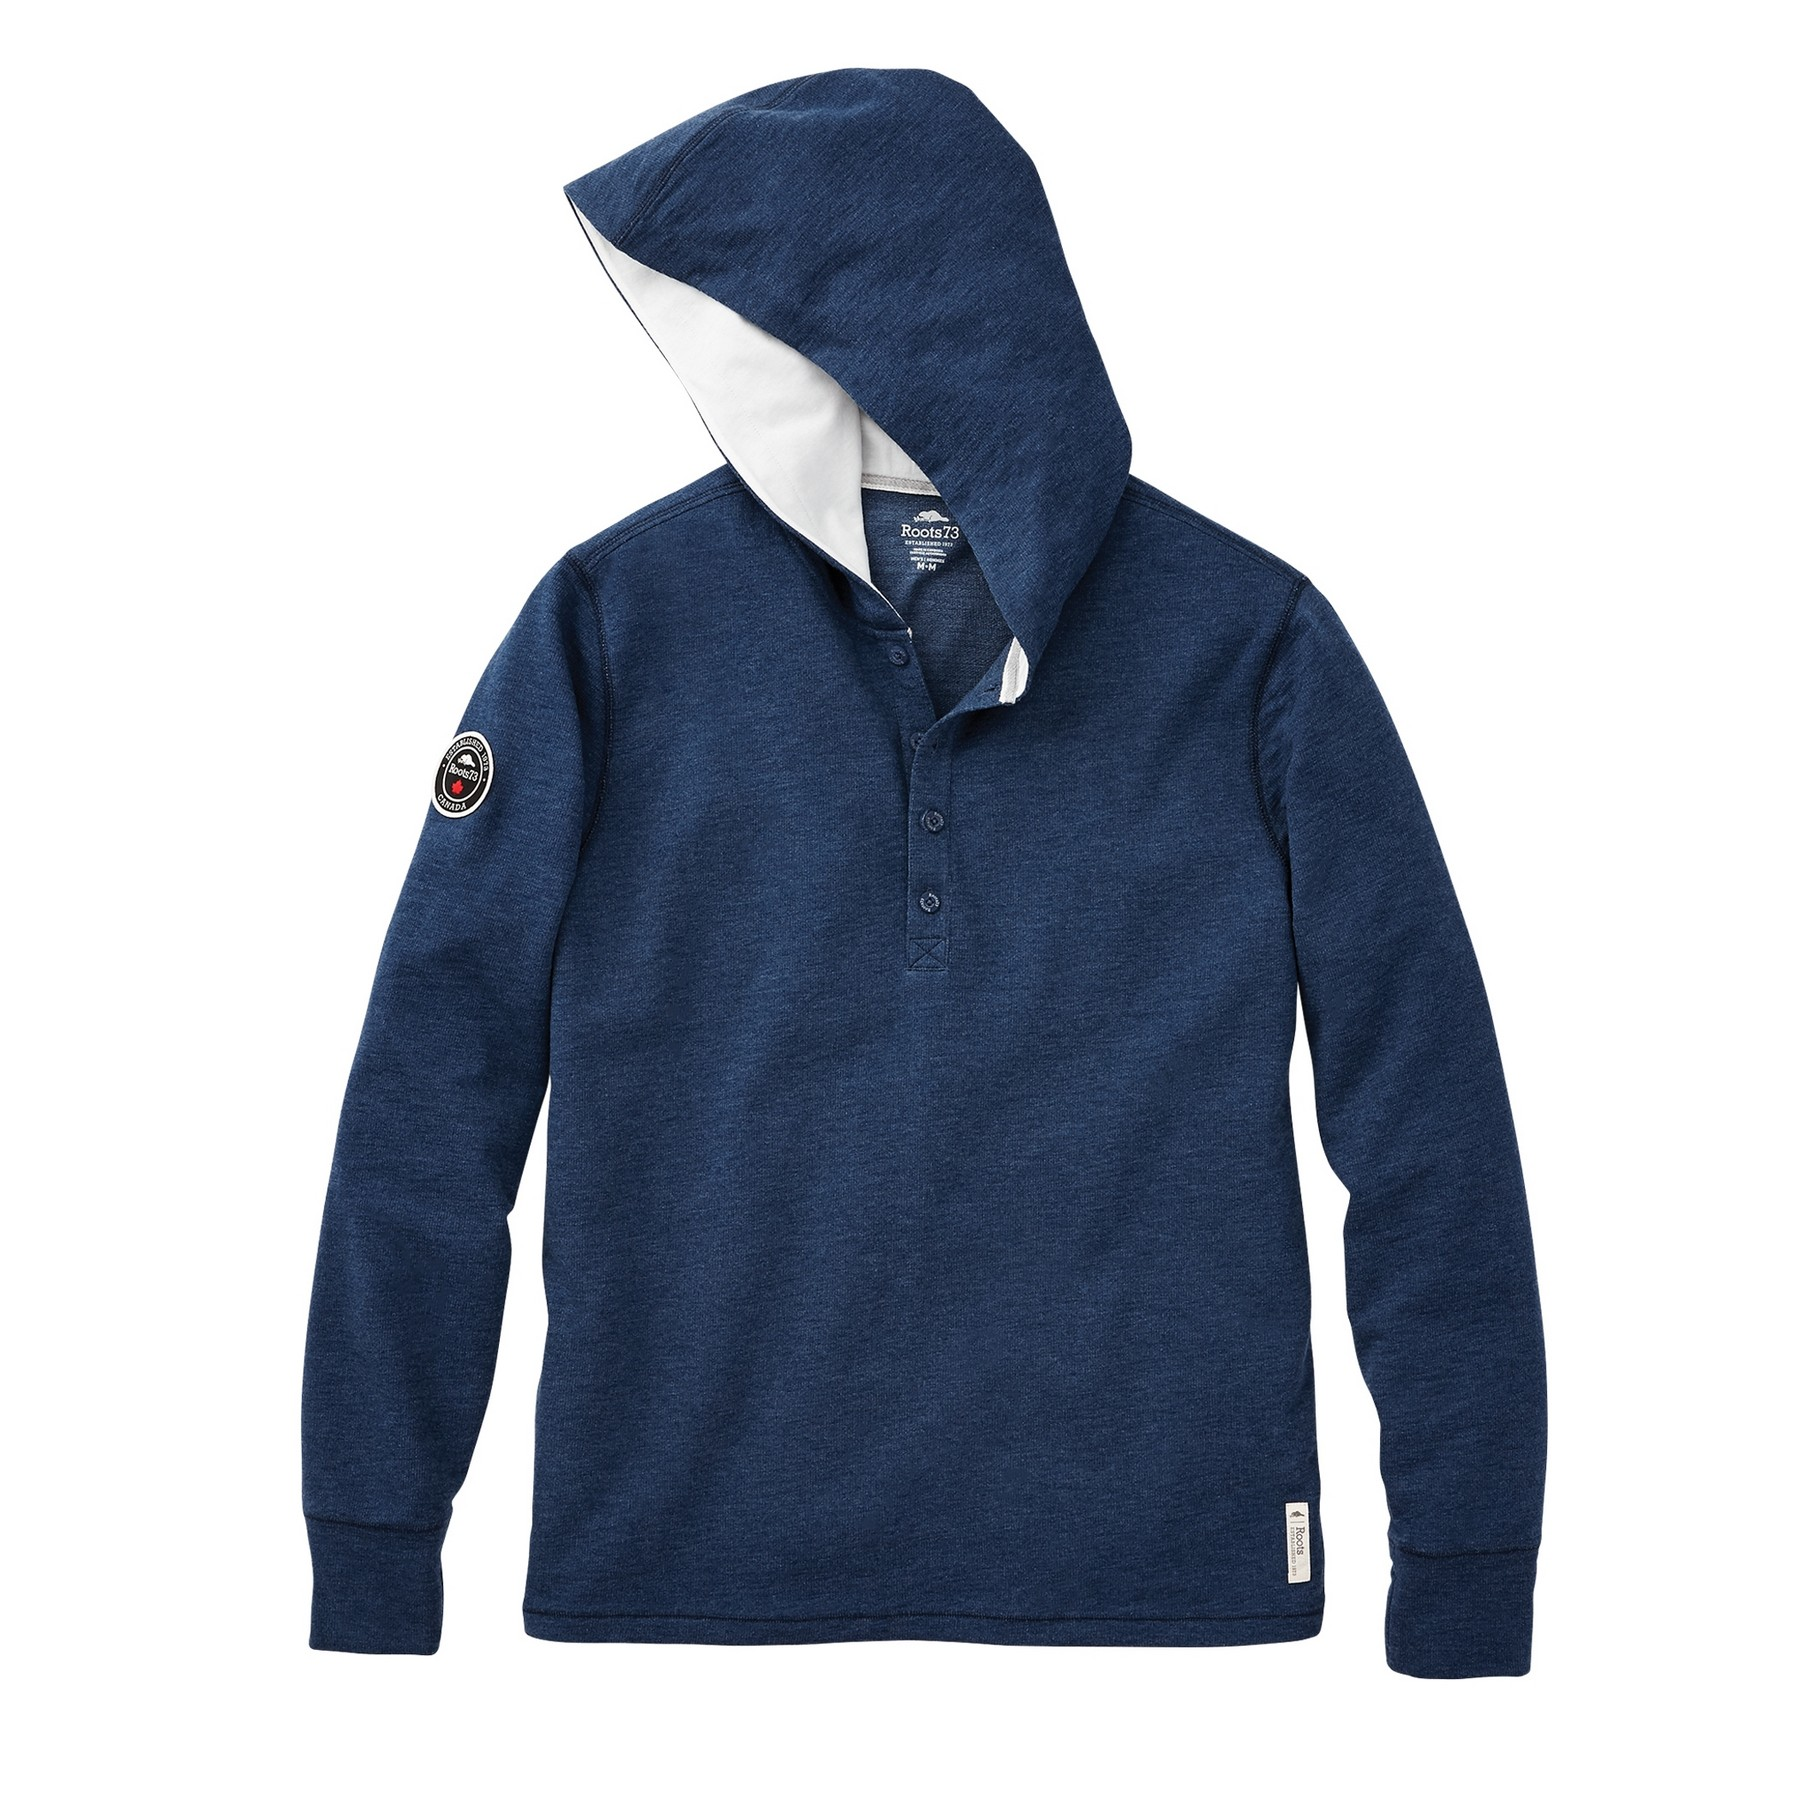 Southlake Knit Men's Hoody, #18704 - Embroidered